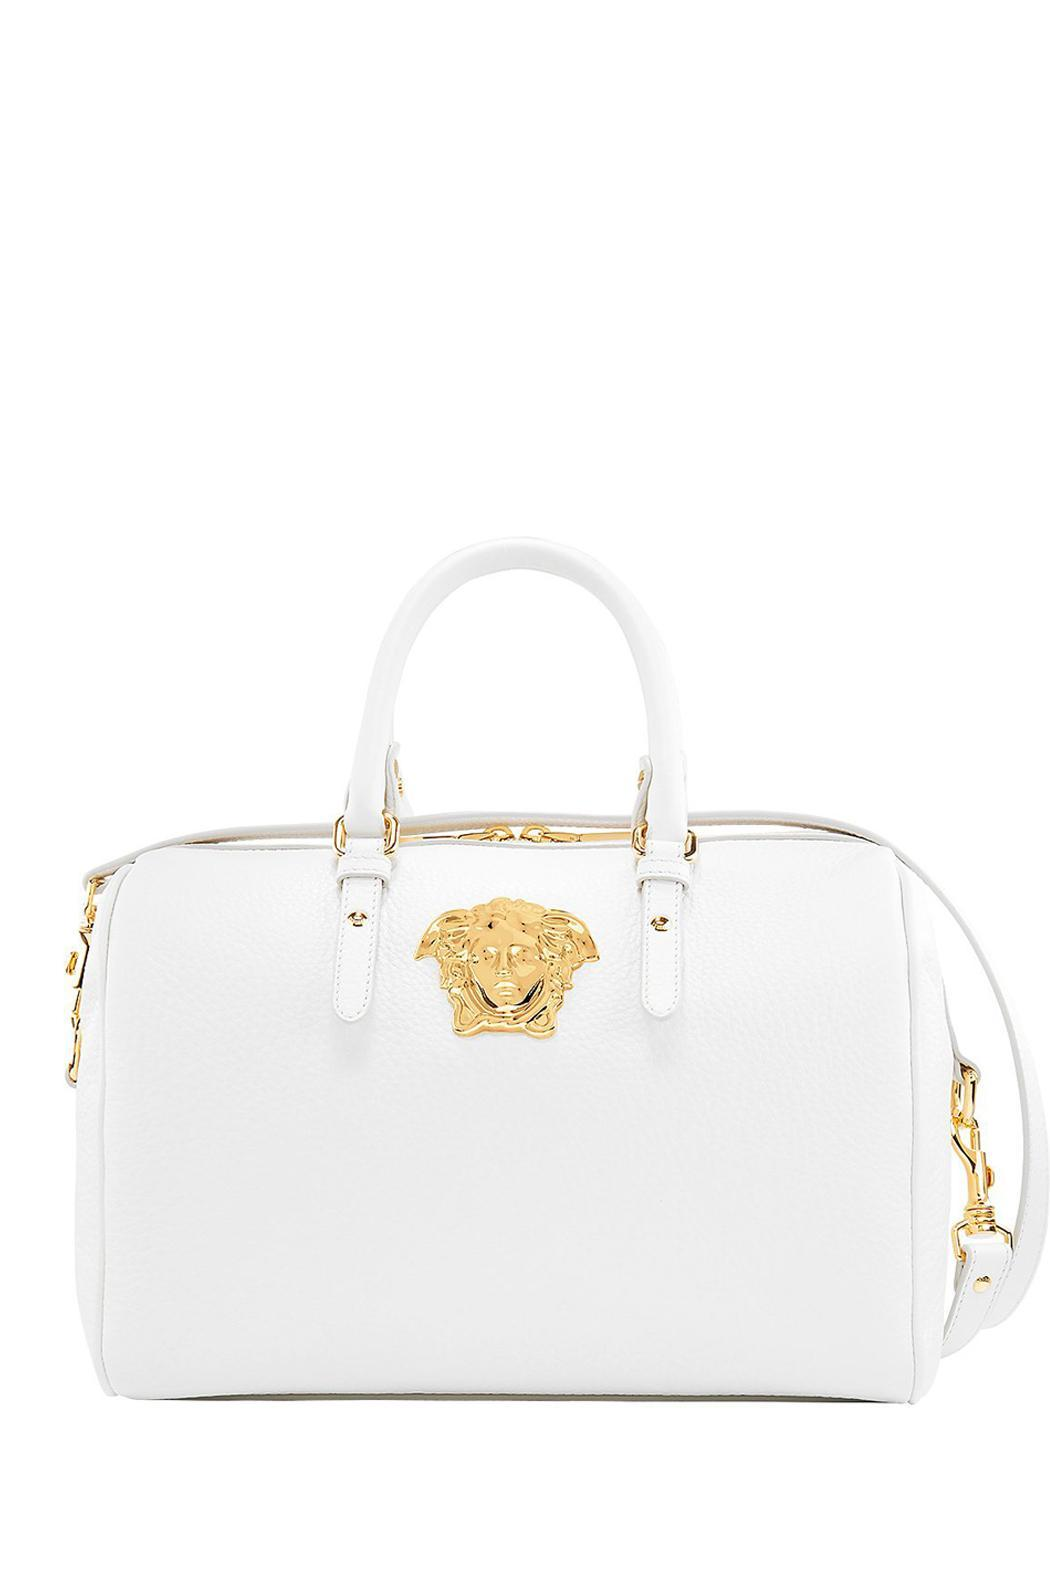 cc137487025c Versace Palazzo Duffle Bag from Atlantic City by Eleganza — Shoptiques